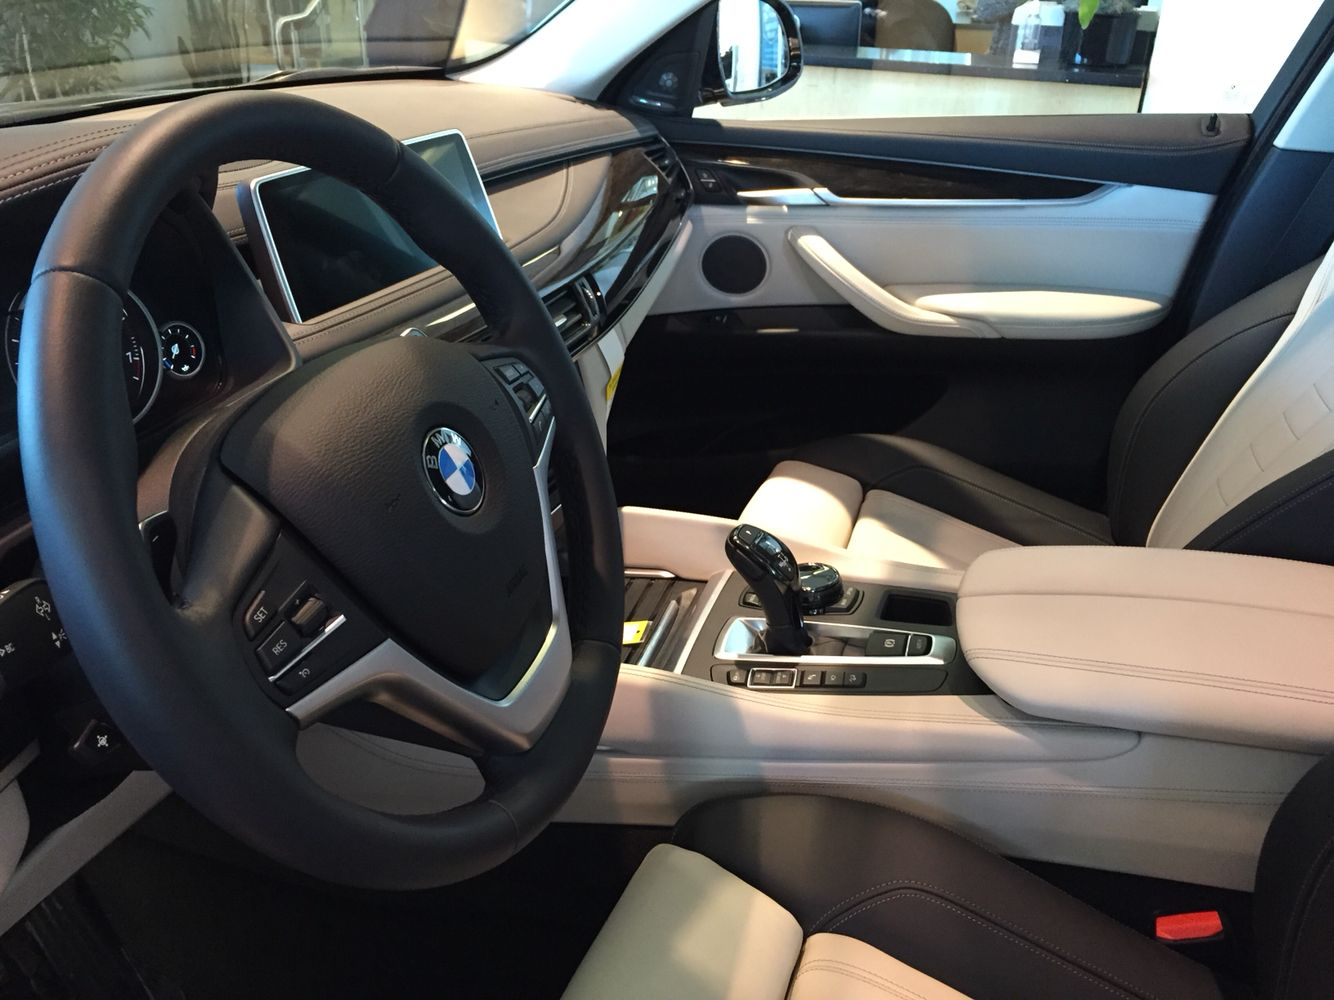 Interieur X6 Bmw Bmw X6 Black And White Interior Cars Bmw X6 Black Bmw X6